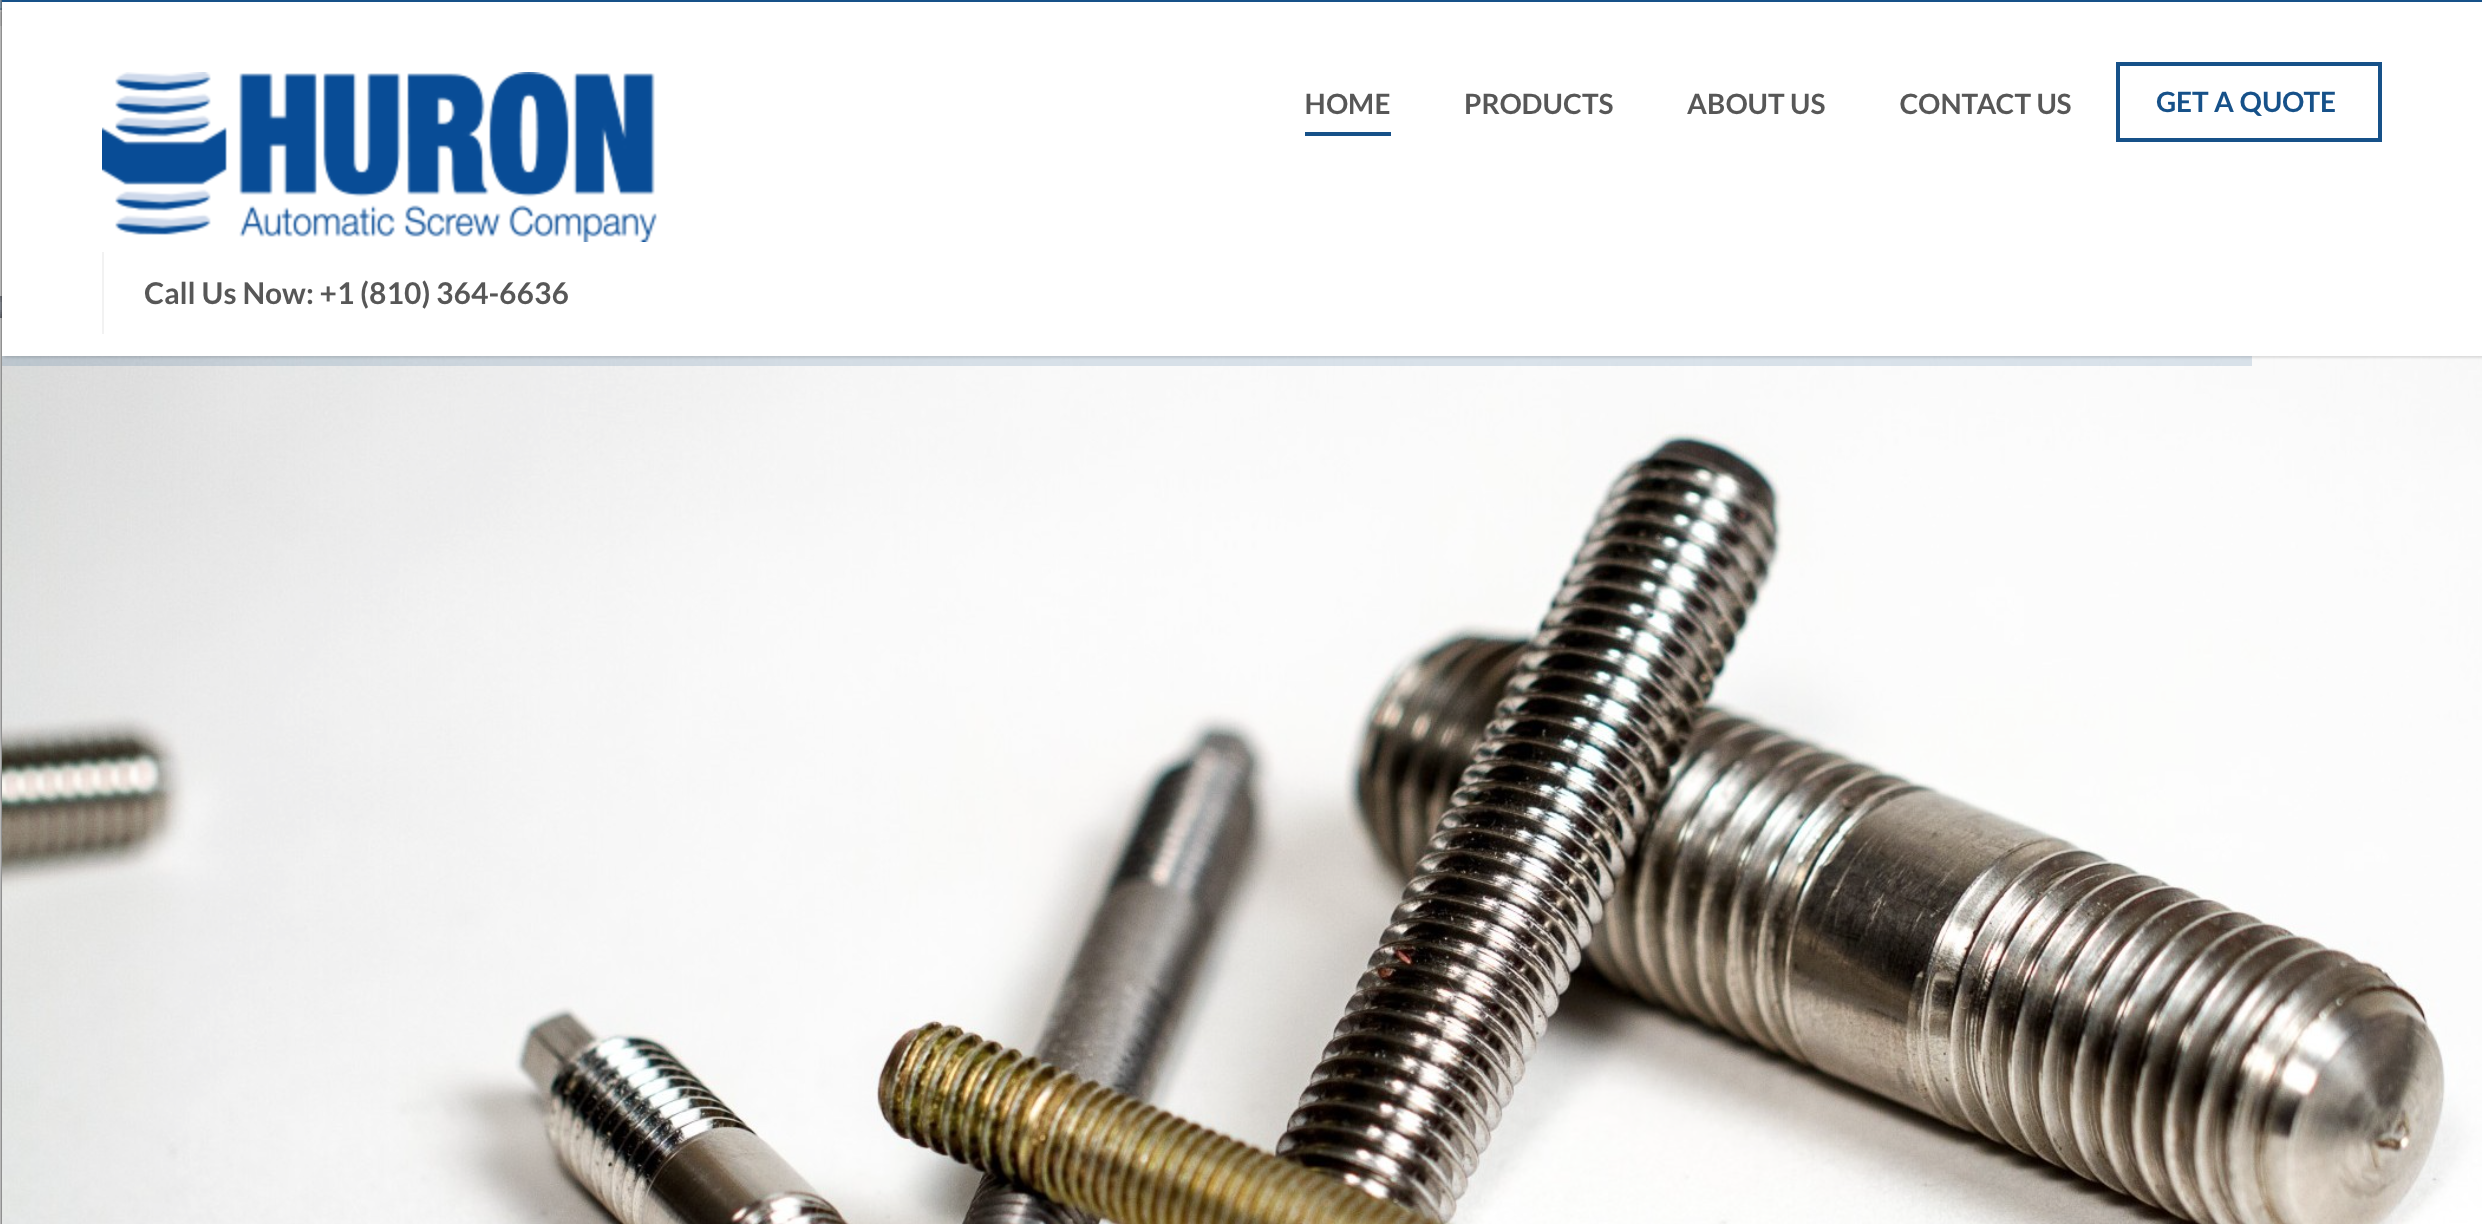 Enjoy Customer Convenience with Huron Automatic Screw Company's Website